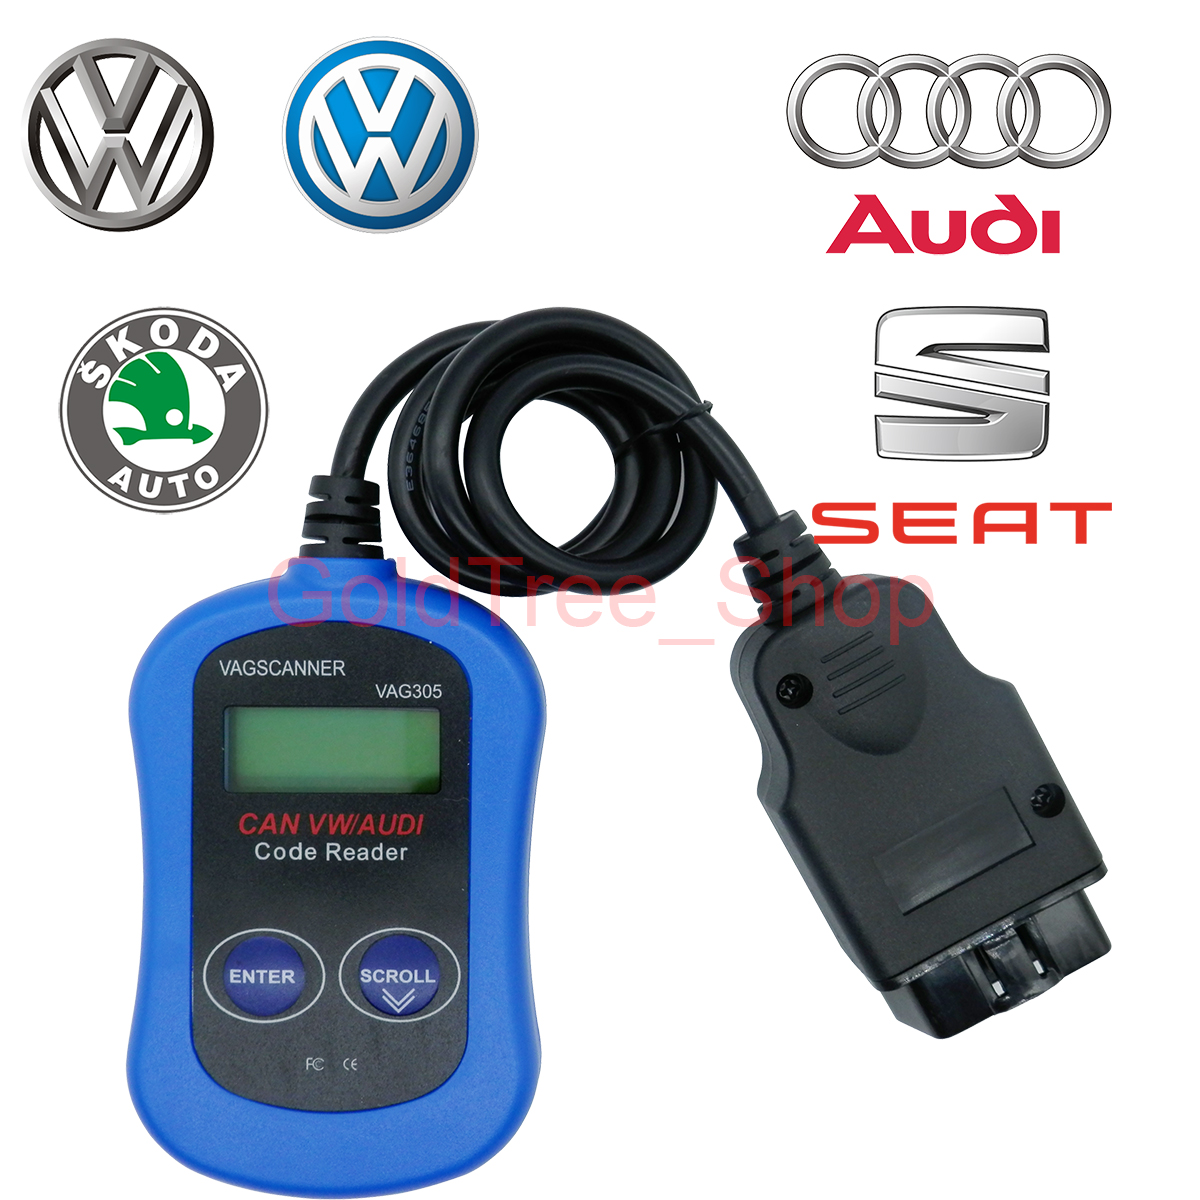 Vag305 Code Reader Auto Can Obd Obdii Scanner Diagnostic Scan Tool Vw Wiring For Audi